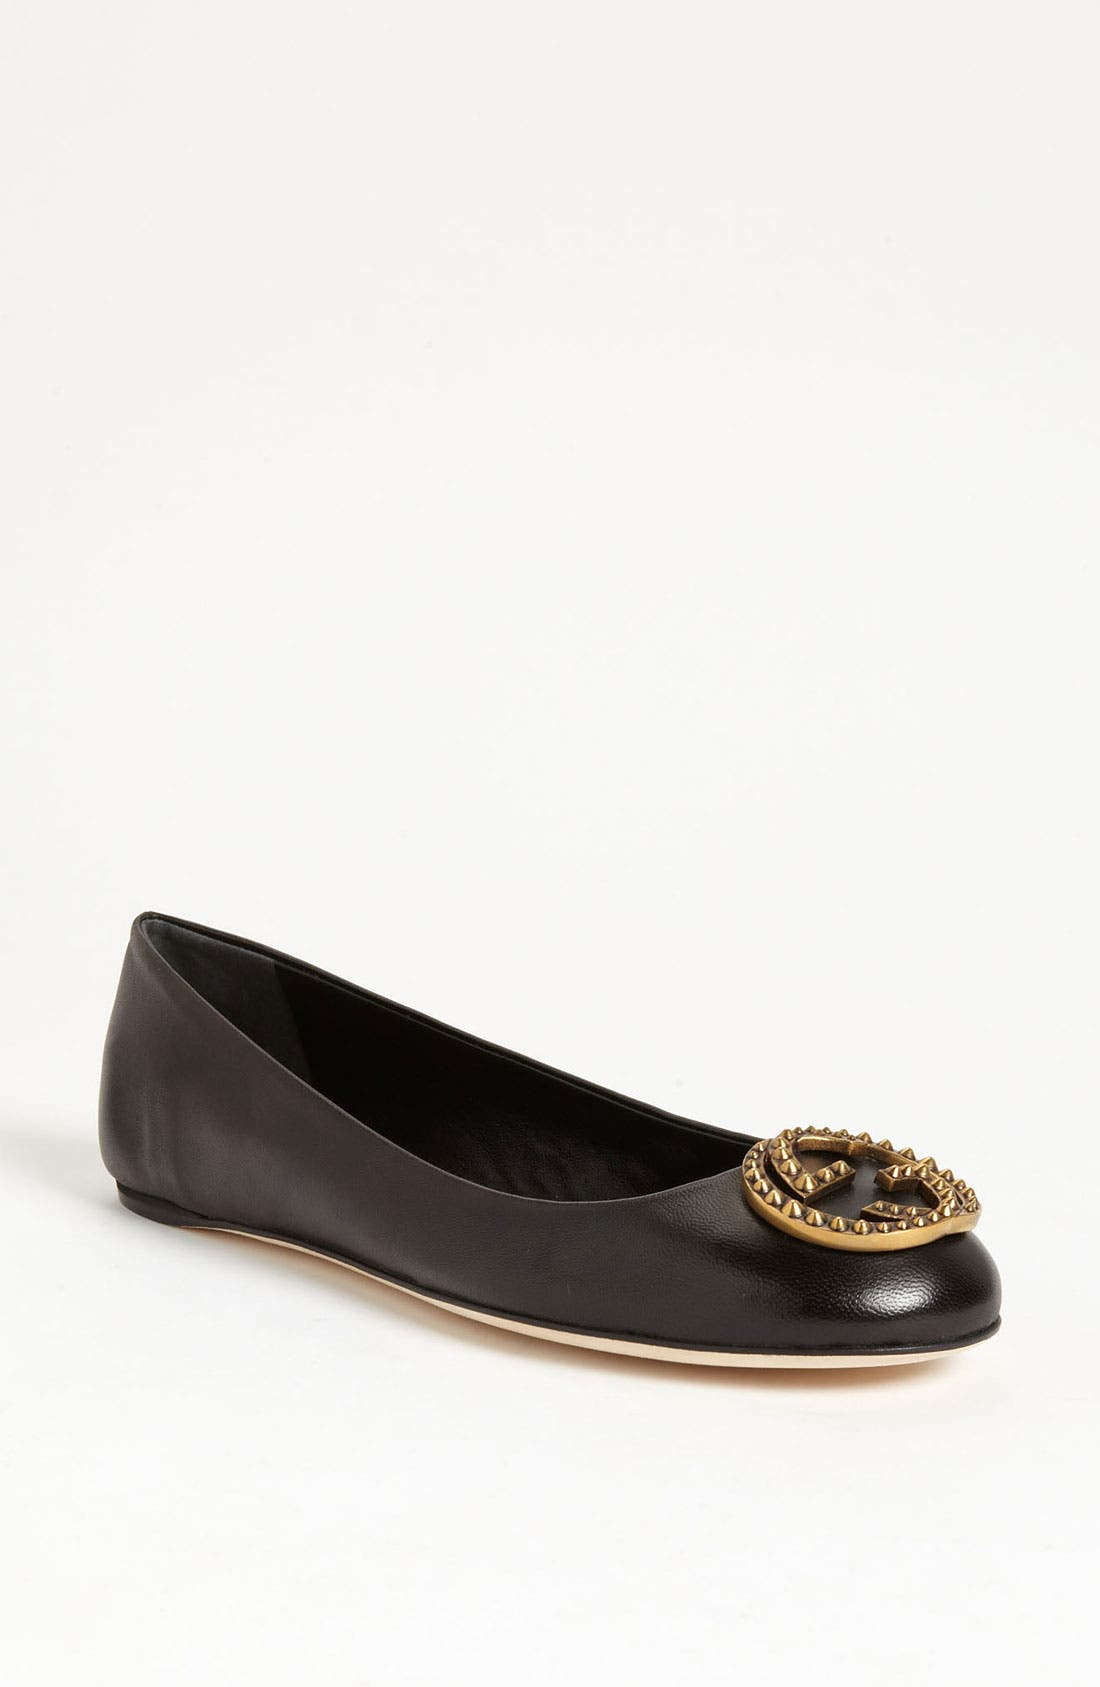 Alternate Image 1 Selected - Gucci Logo Ballet Flat